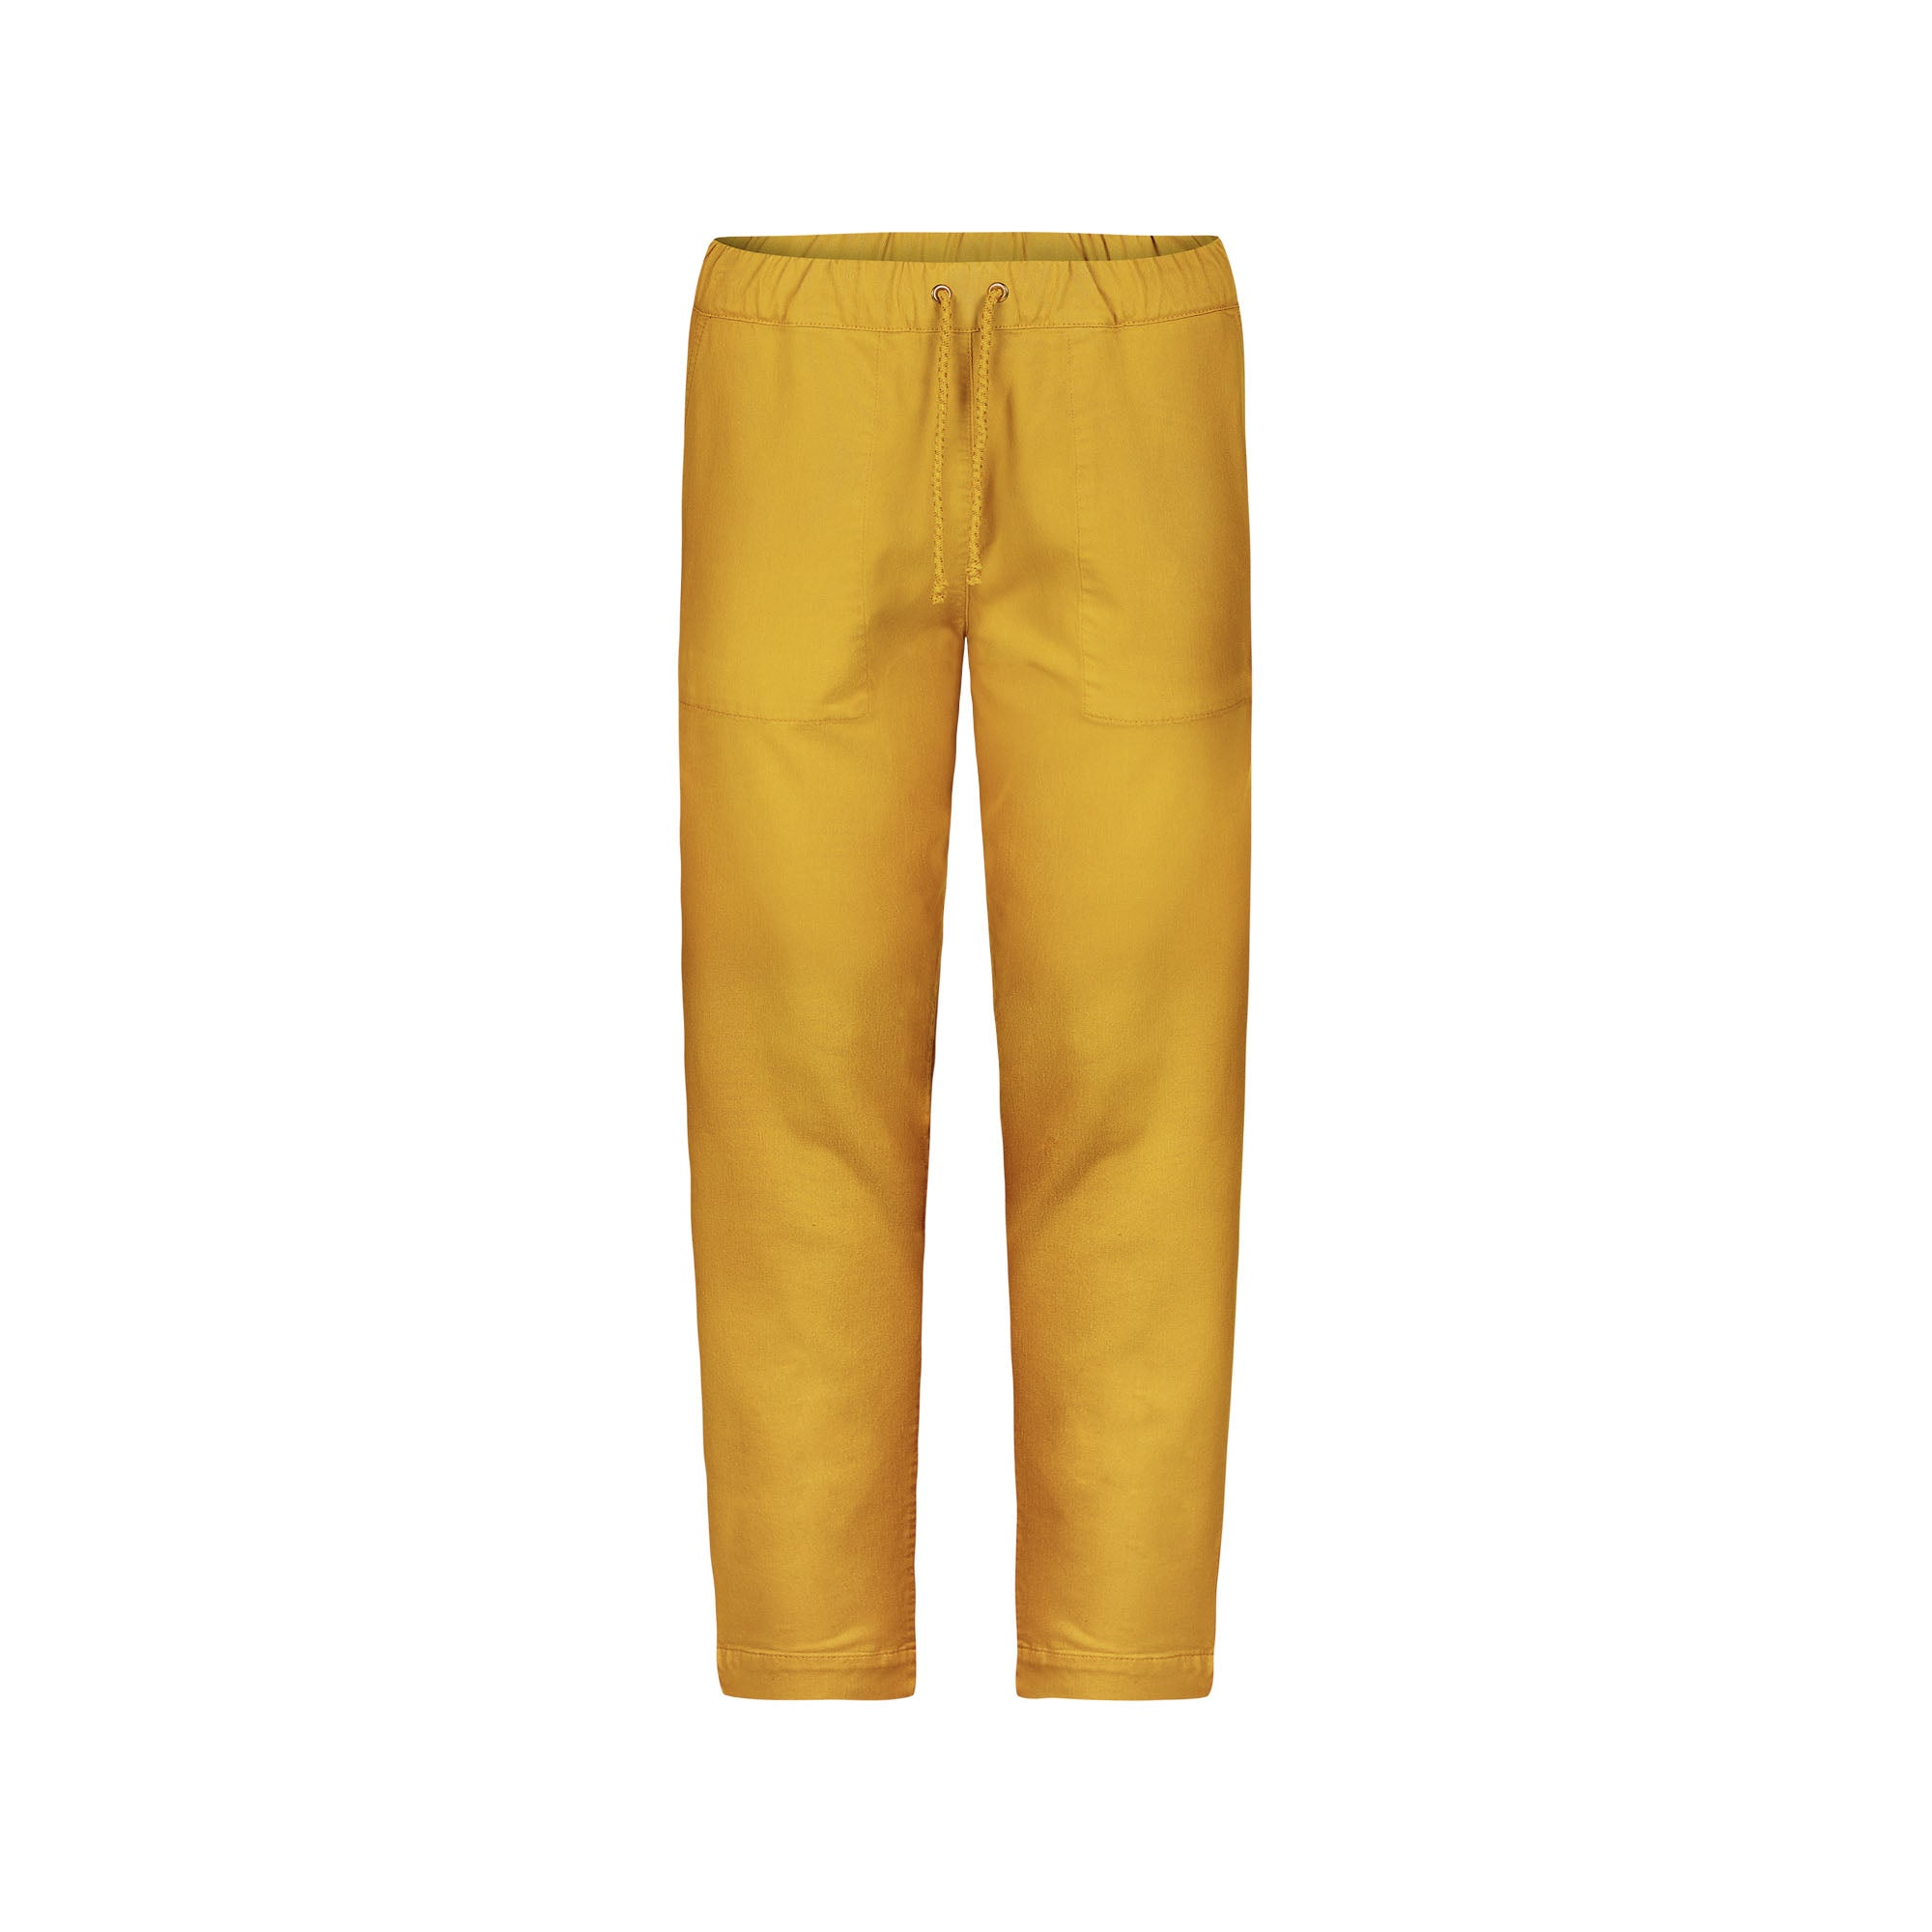 Easyasspie TENCEL™ Pants Ladies Mustard